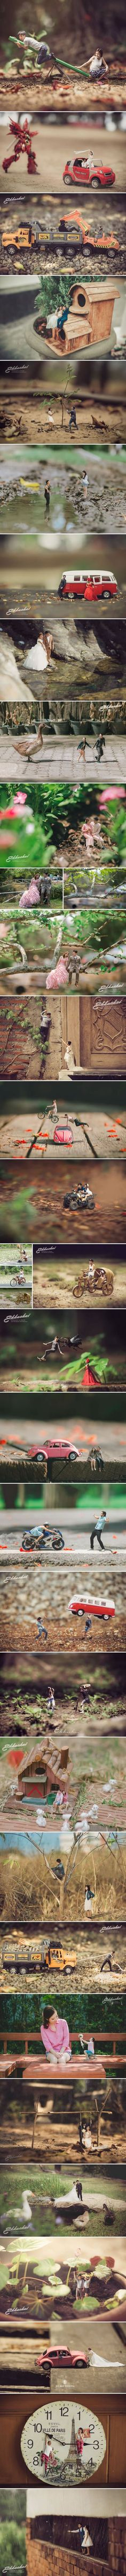 This wedding photographer turns couples into miniature people (Ekkachai Saelow)